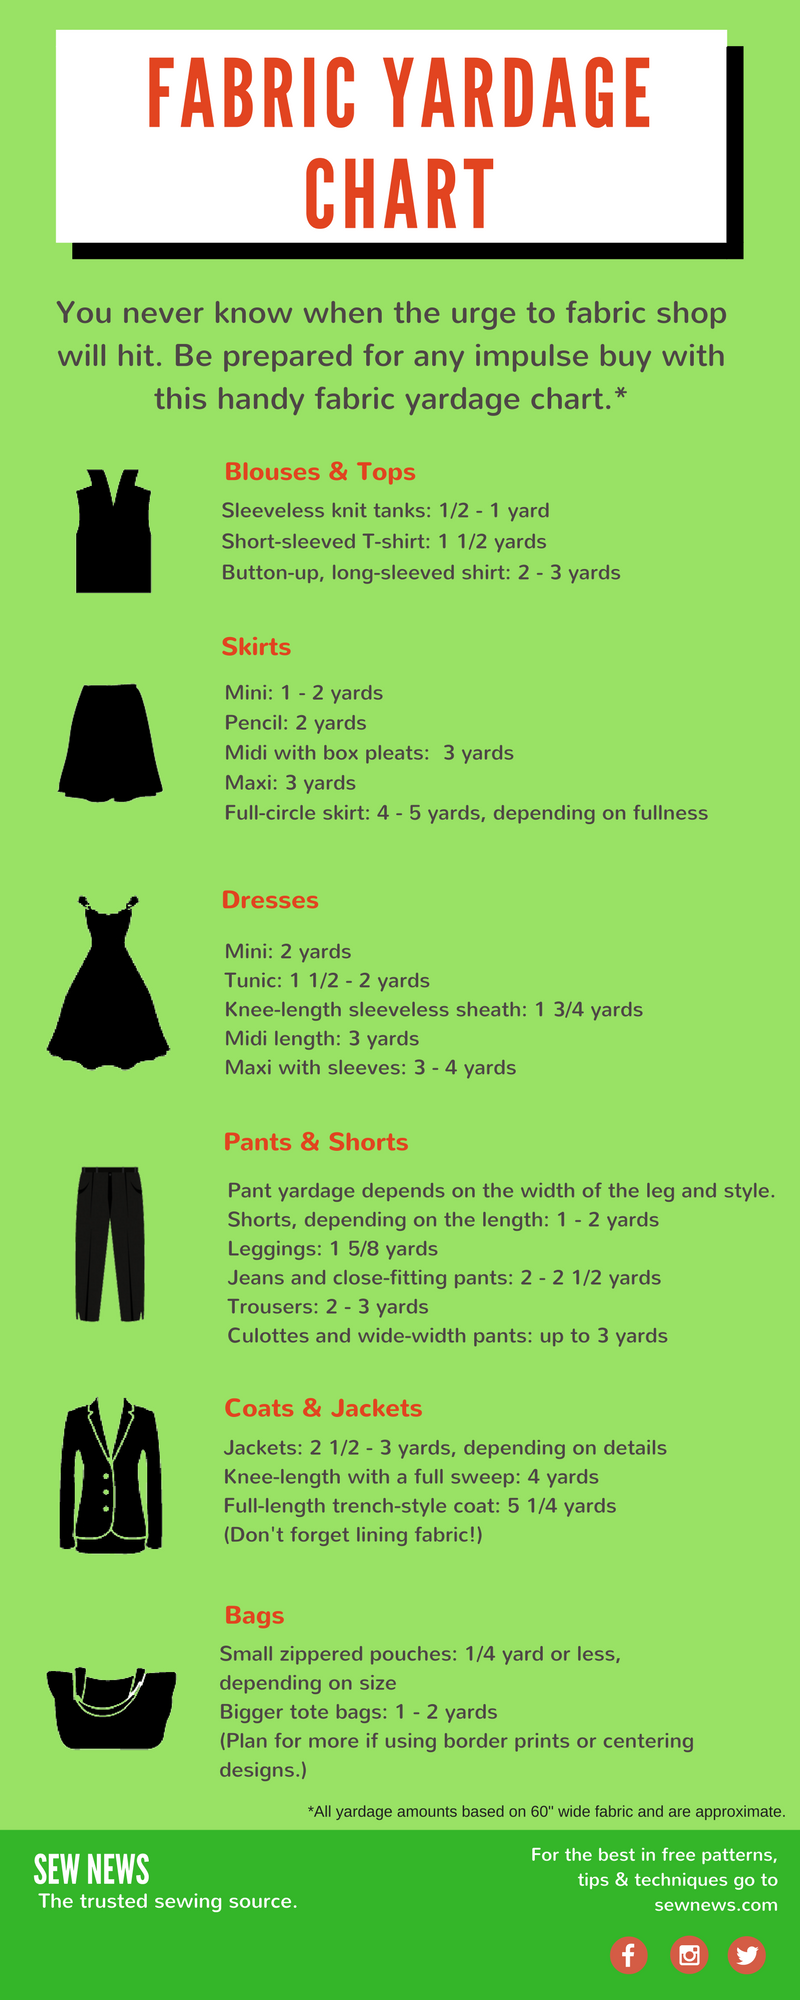 Handy Fabric Yardage Chart